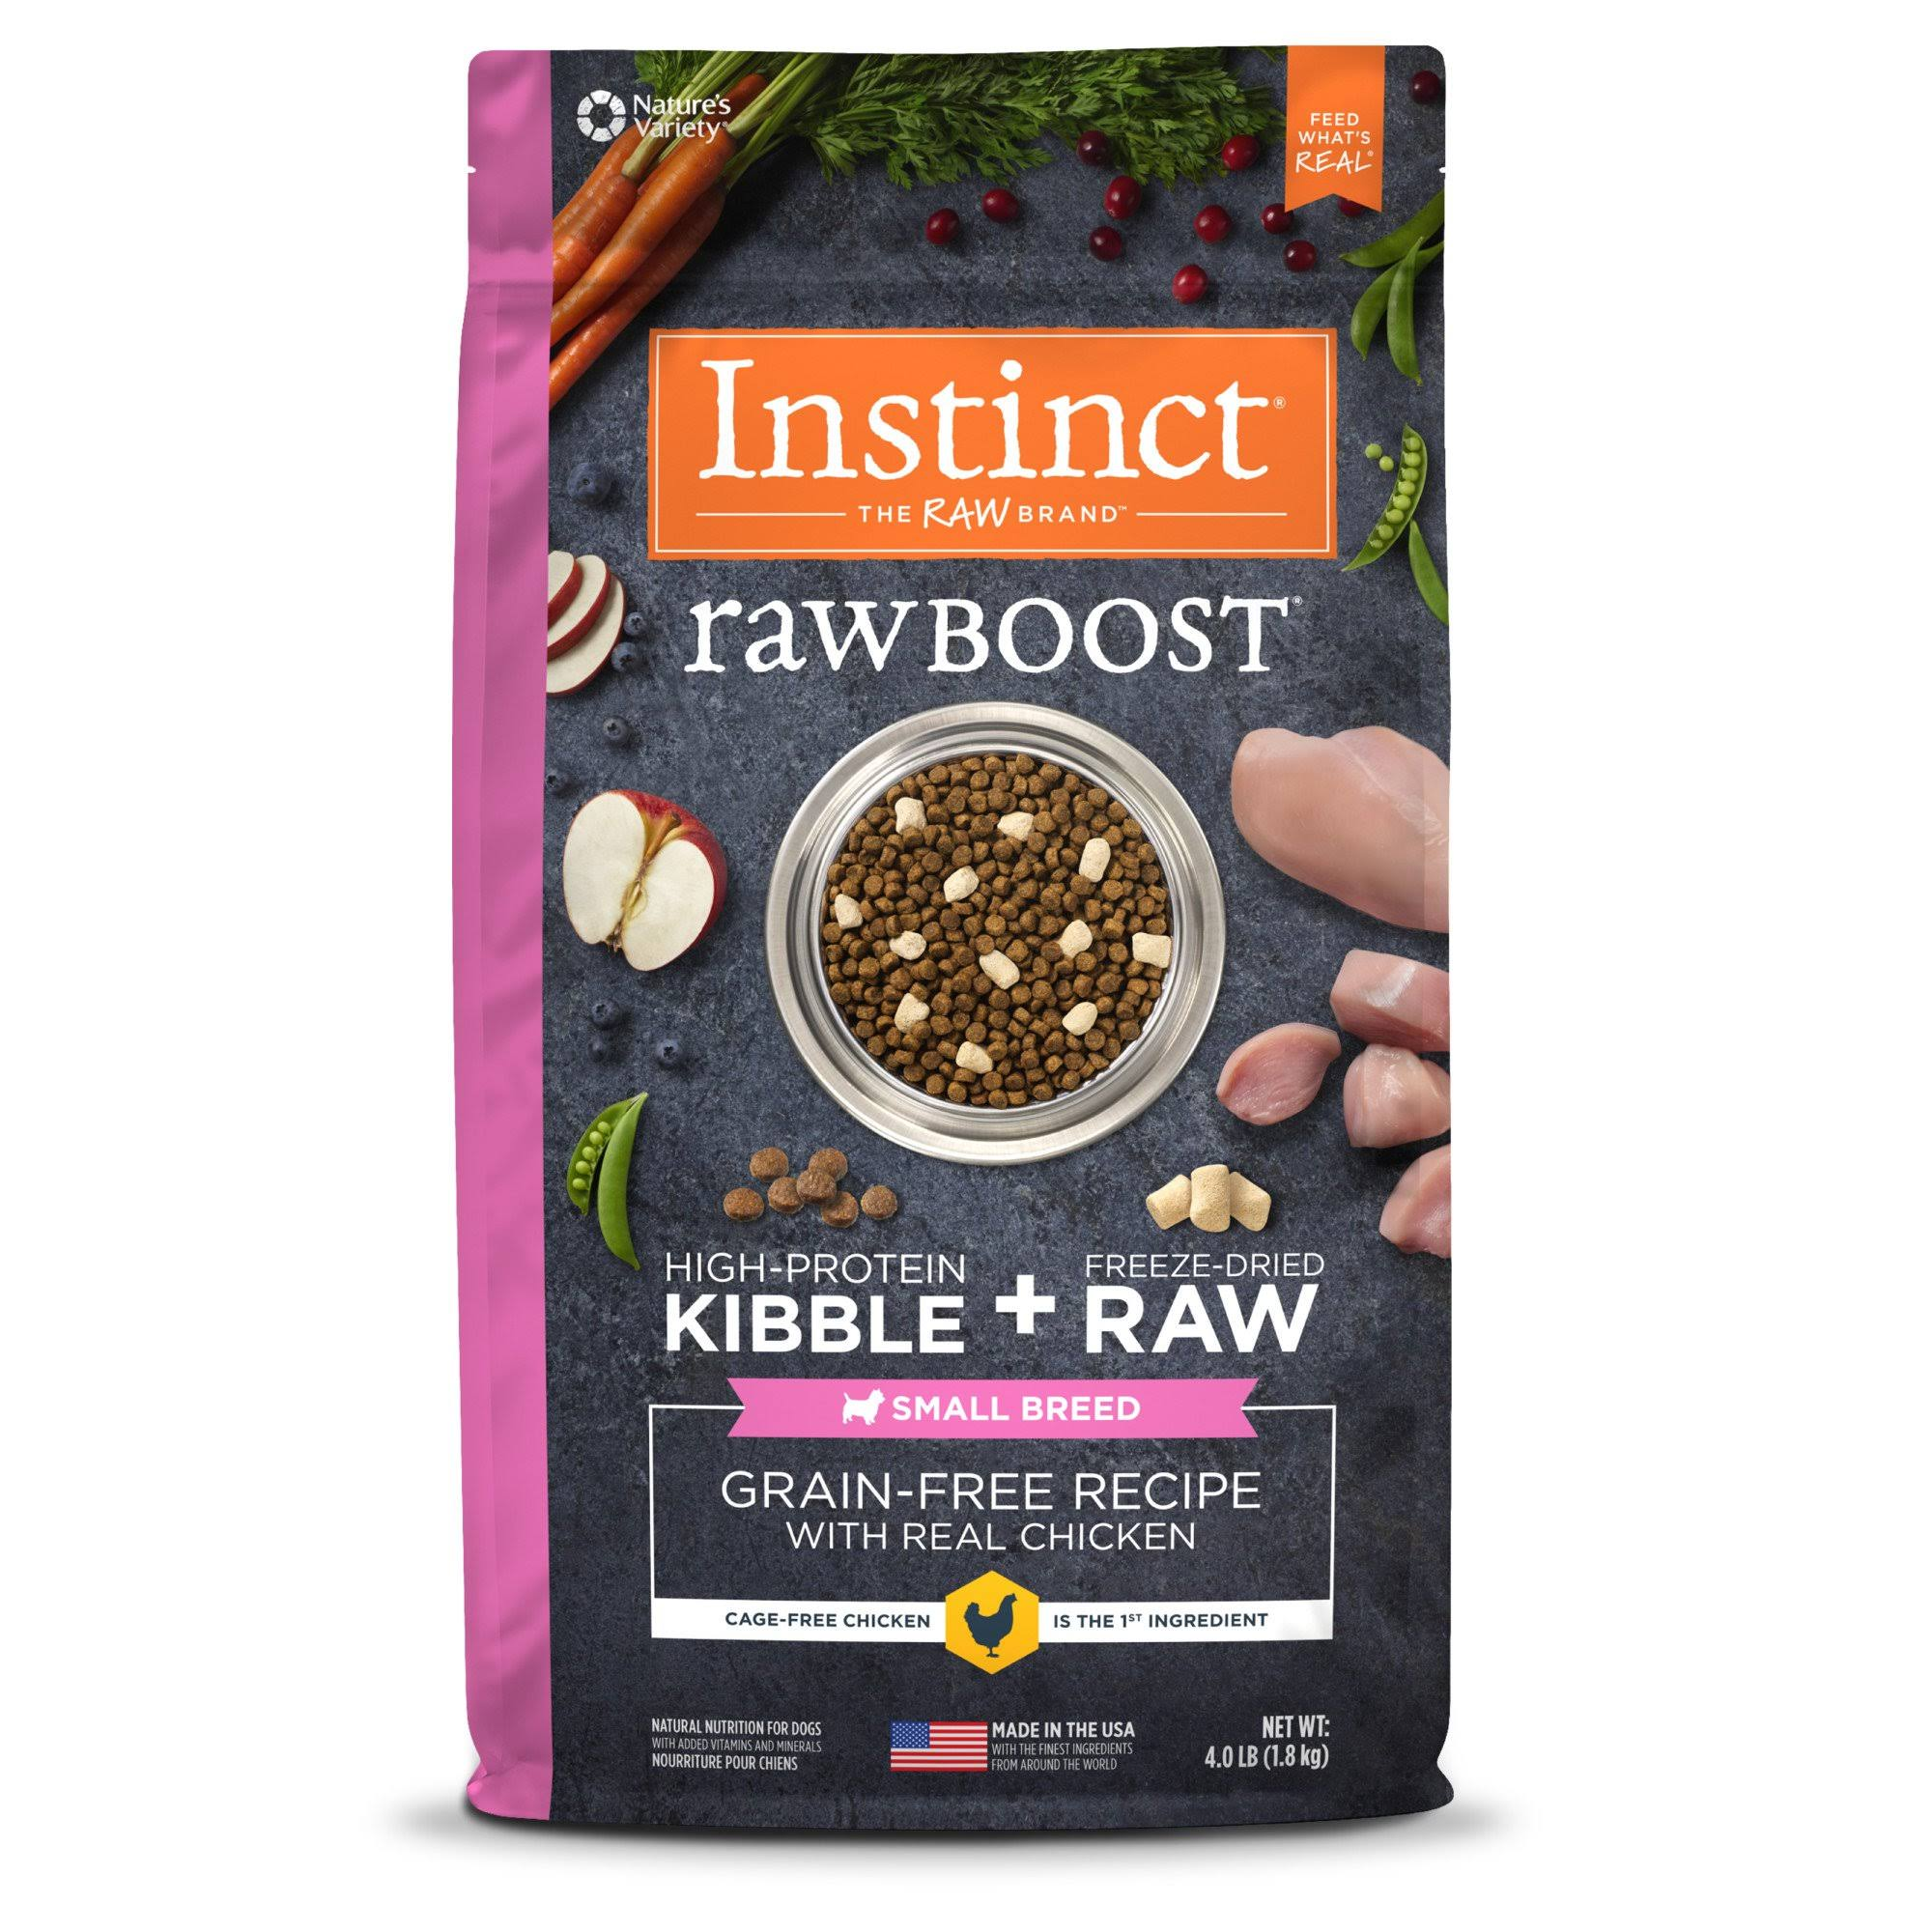 Nature's Variety Instinct Raw Boost Grain Free Dry Dog Food - Chichen, 4.3lbs